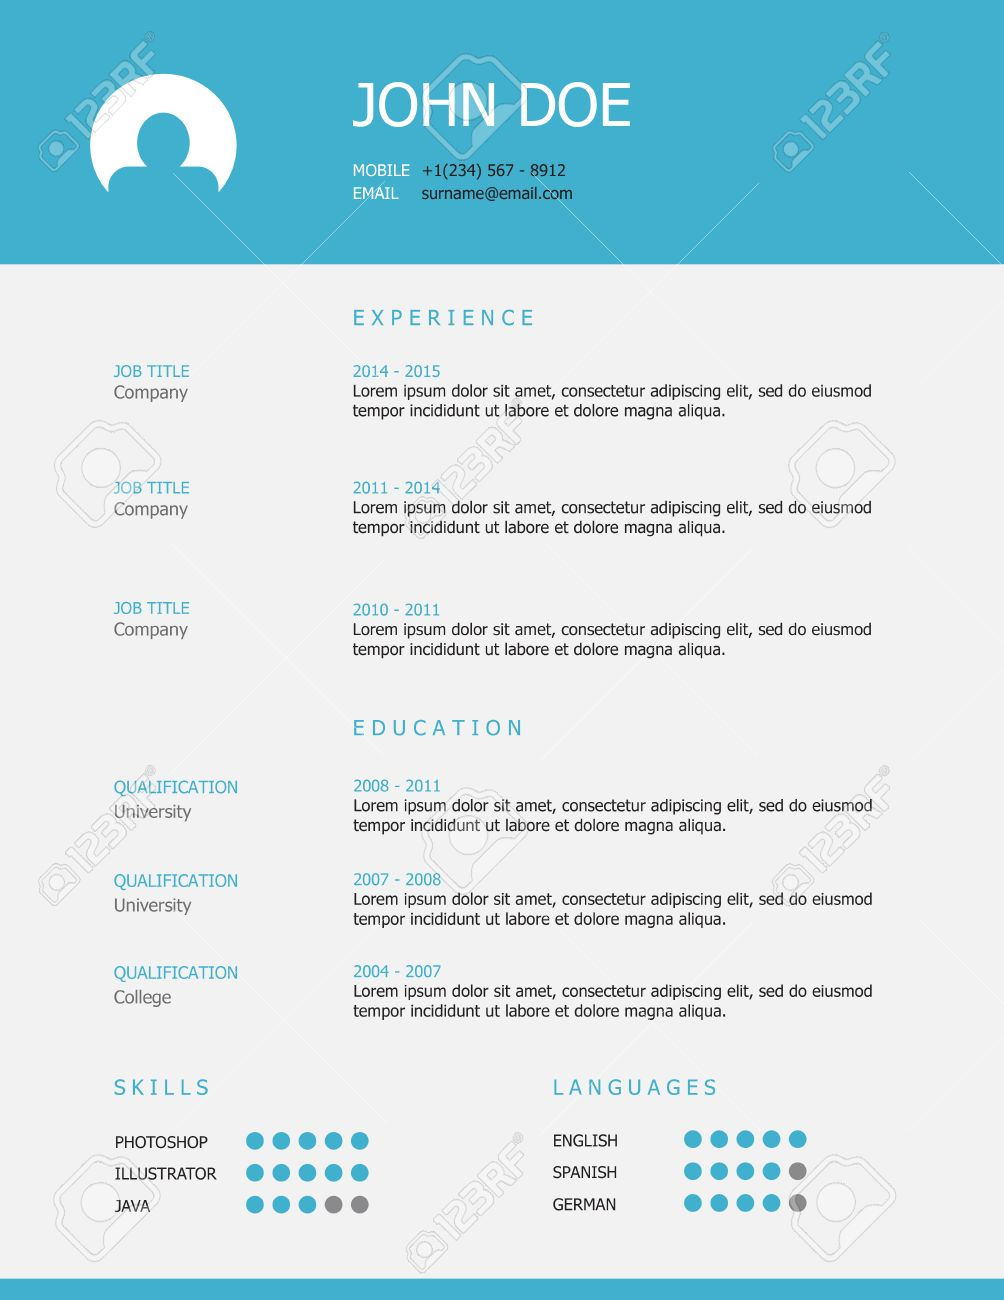 Professional Simple Styled Resume Template Design With Blue Header ...